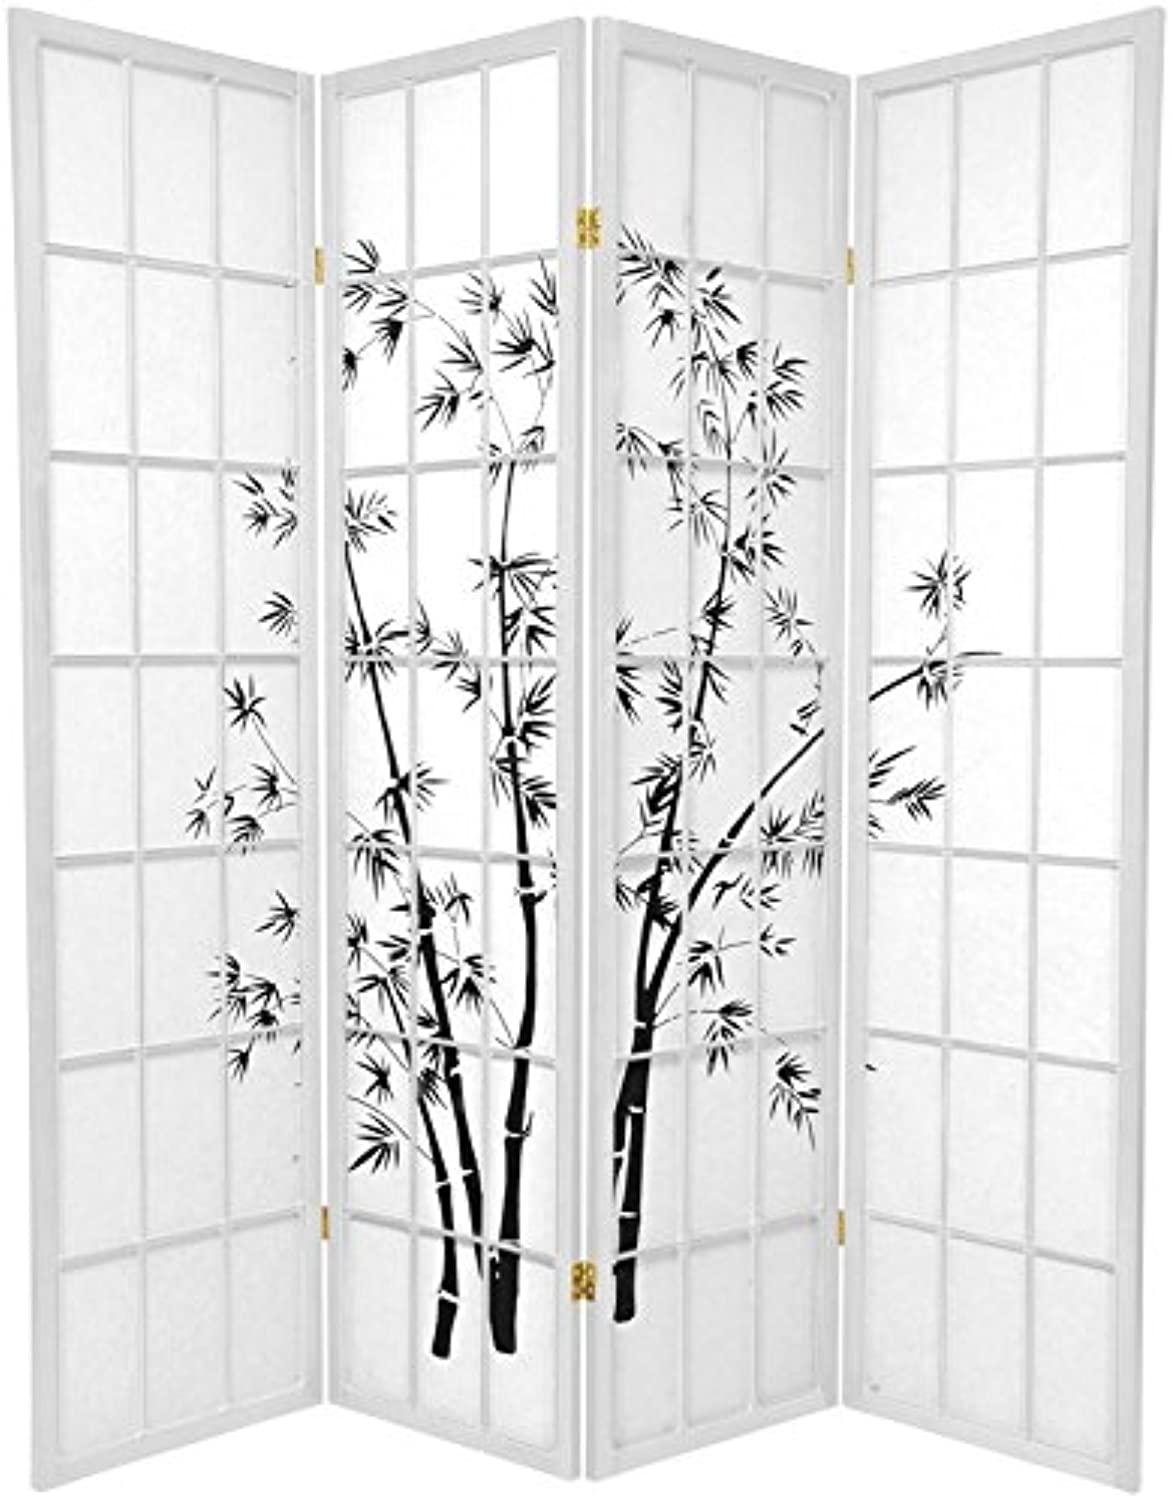 Oriental Furniture 6-Feet Tall Lucky Bamboo Japanese Style Room Divider, White, 4 Panels